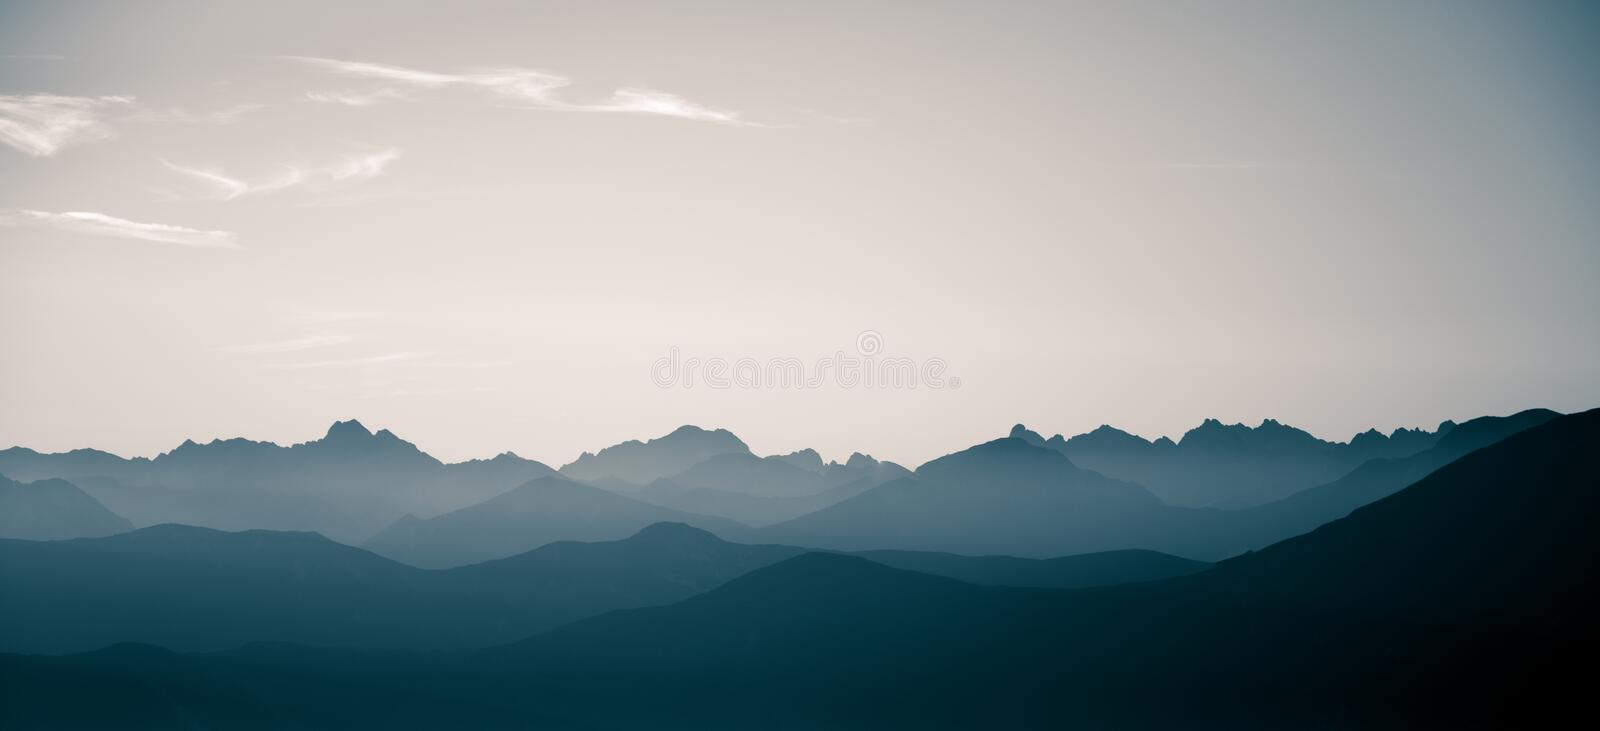 A beautiful, abstract monochrome mountain landscape in blue tonality. stock photos